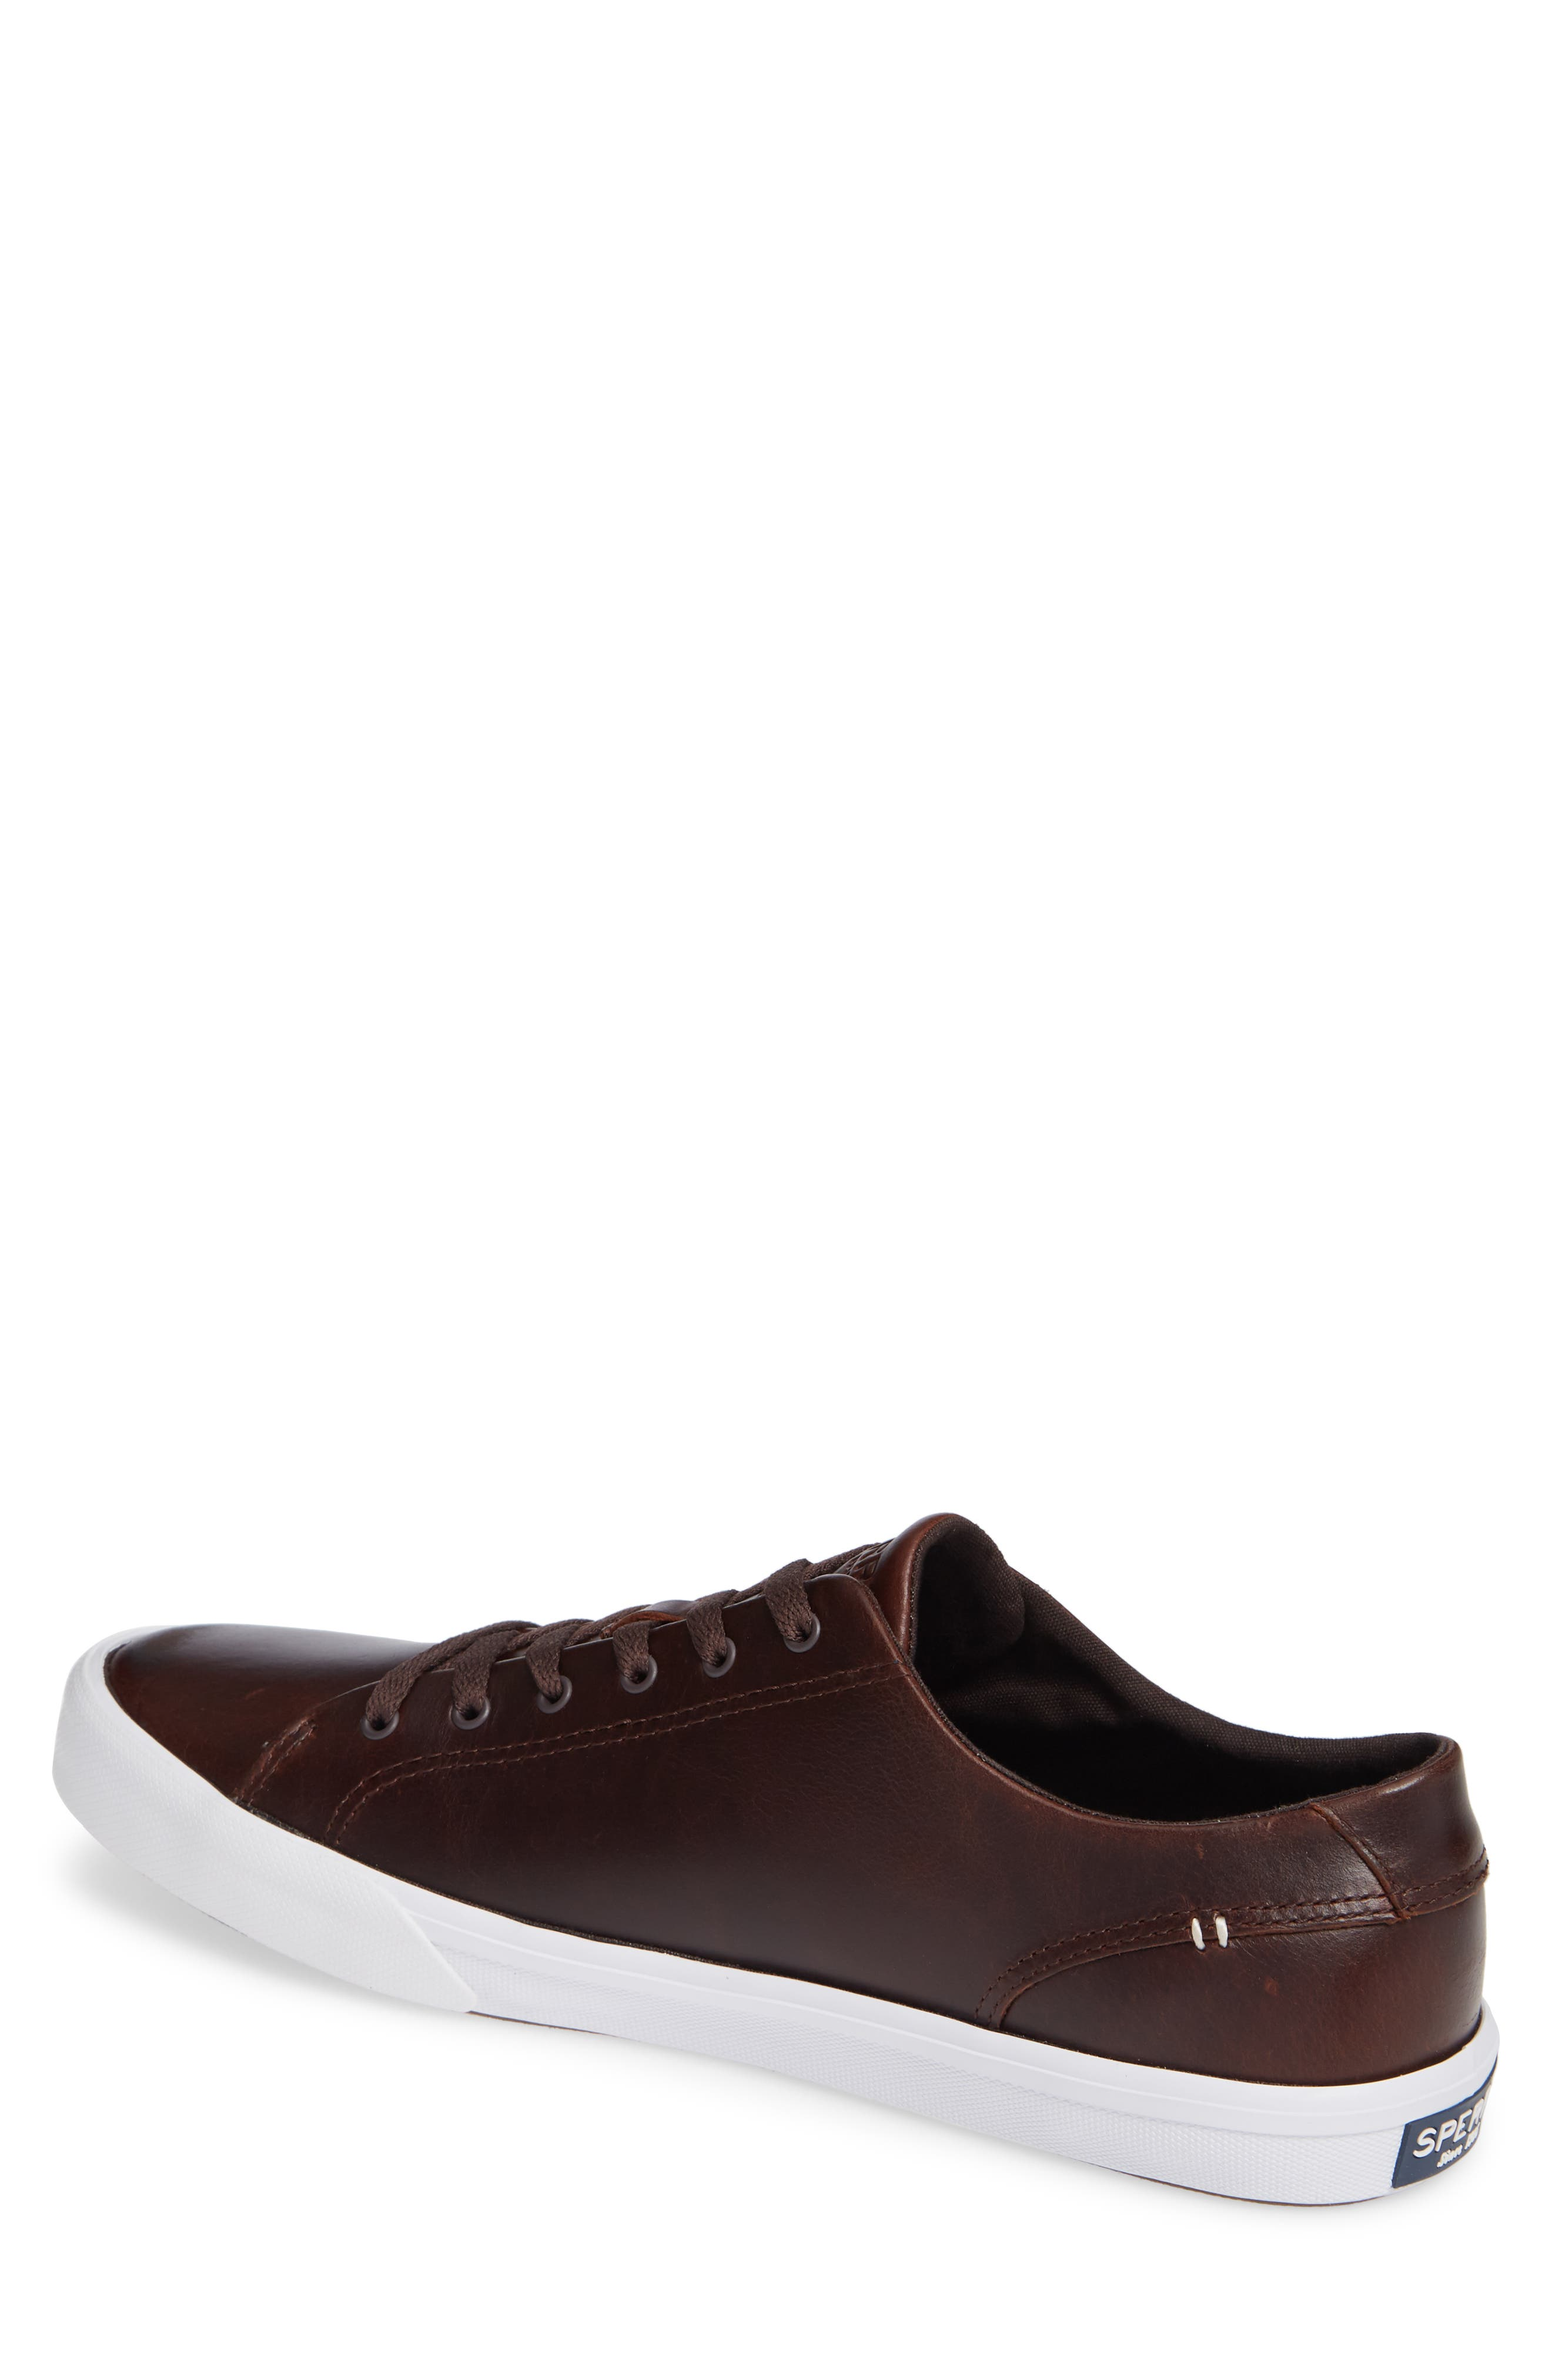 SPERRY, Striper II Sneaker, Alternate thumbnail 2, color, AMARETTO LEATHER